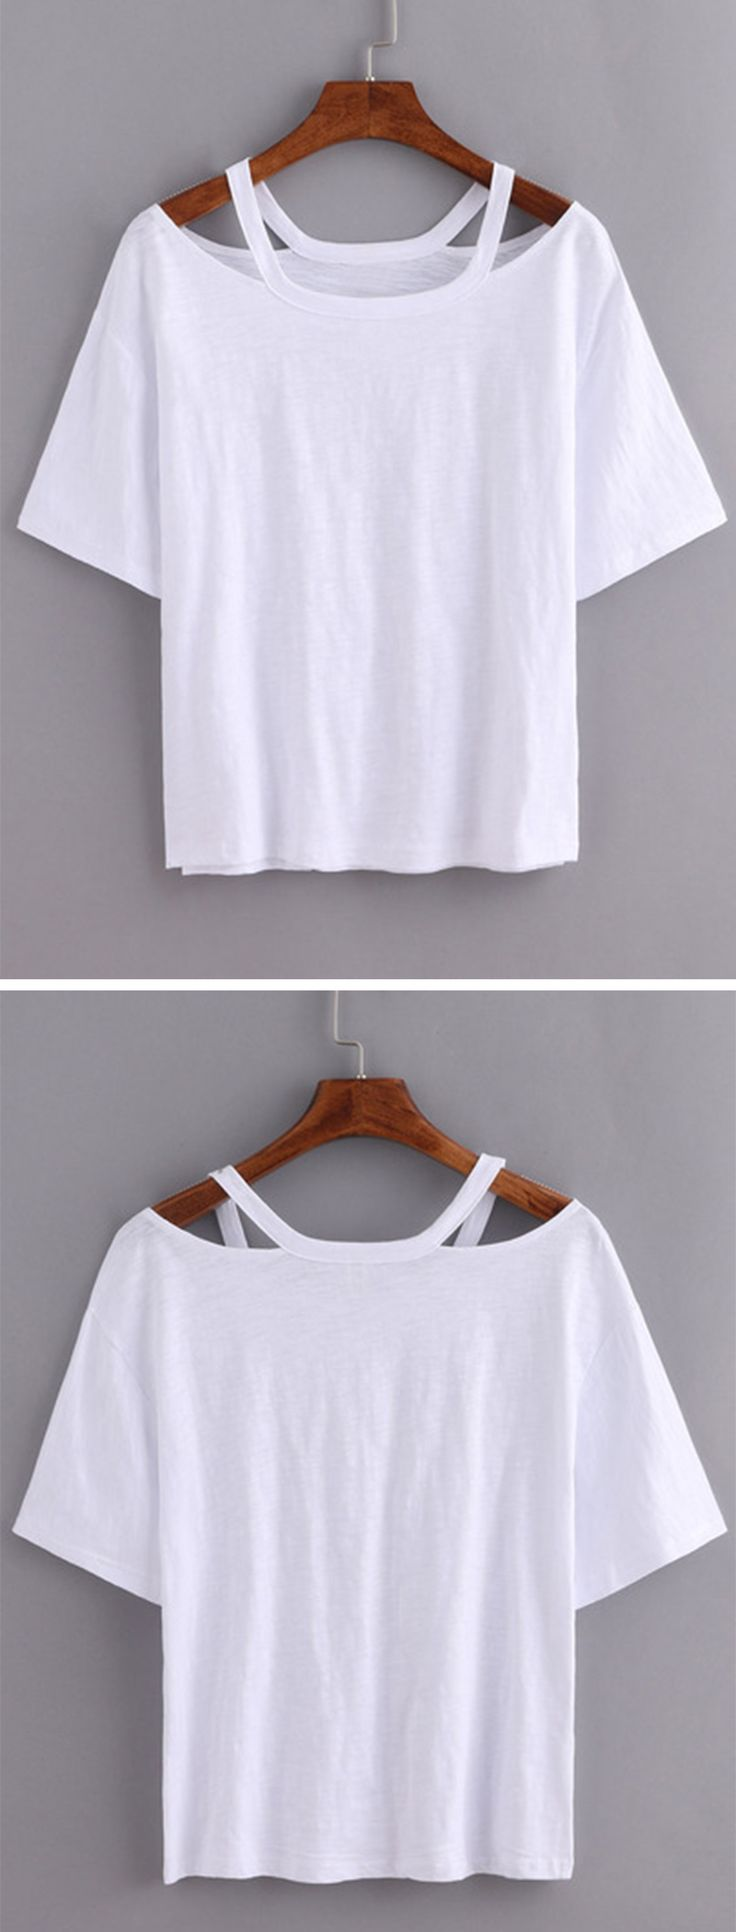 Cutout Loose-Fit White T-shirt | Pinterest | Clothes, Diy clothes ...